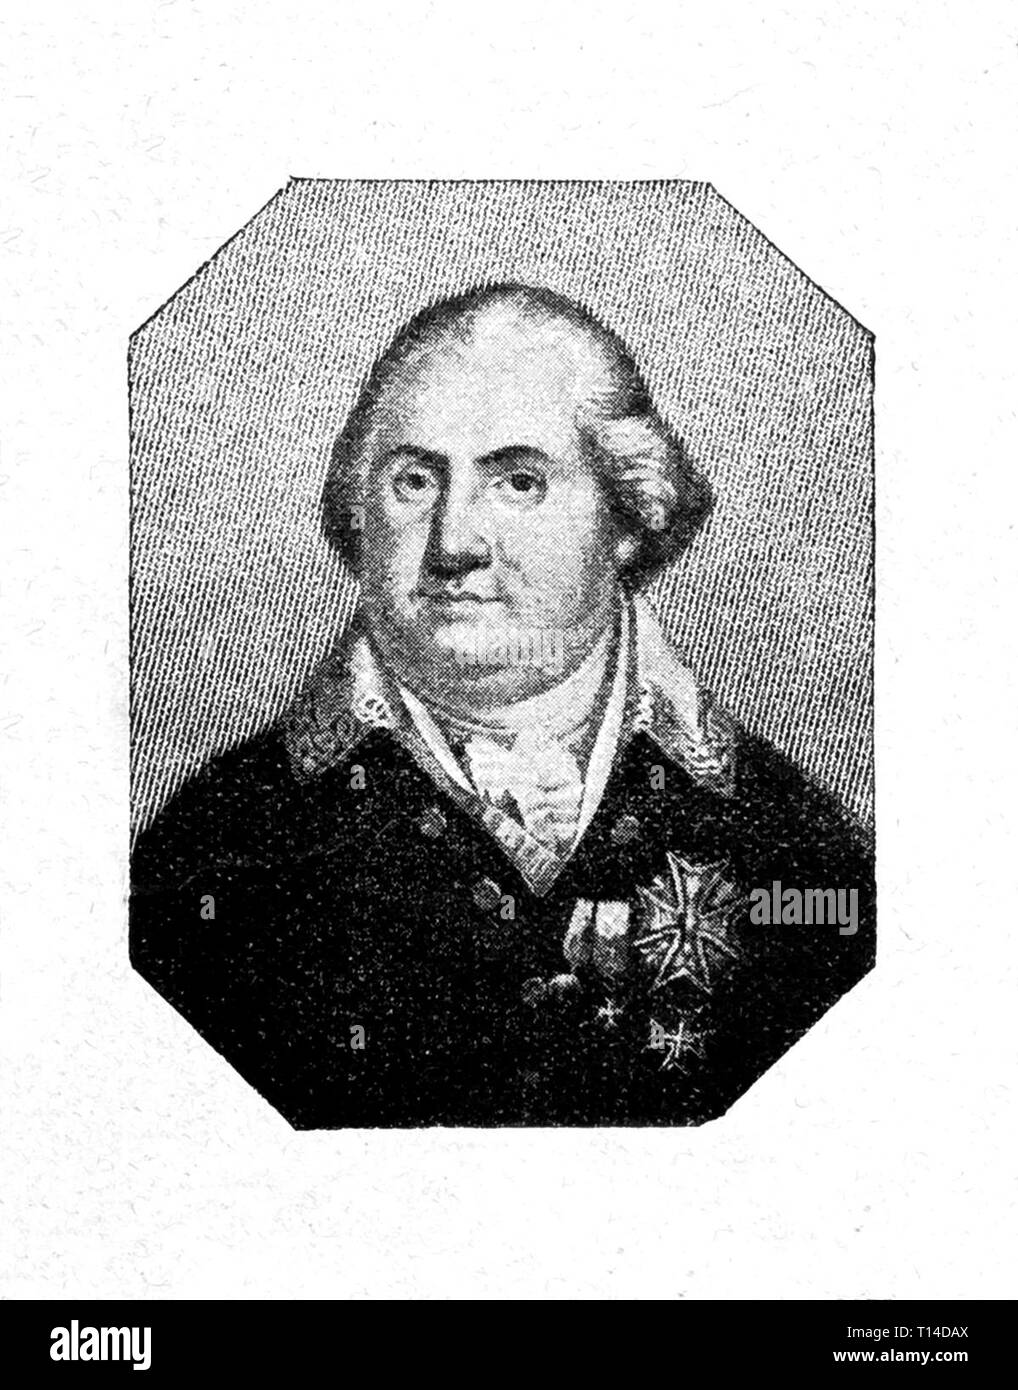 Louis XVIII of France. Digital improved reproduction from Illustrated overview of the life of mankind in the 19th century, 1901 edition, Marx publishing house, St. Petersburg. Stock Photo